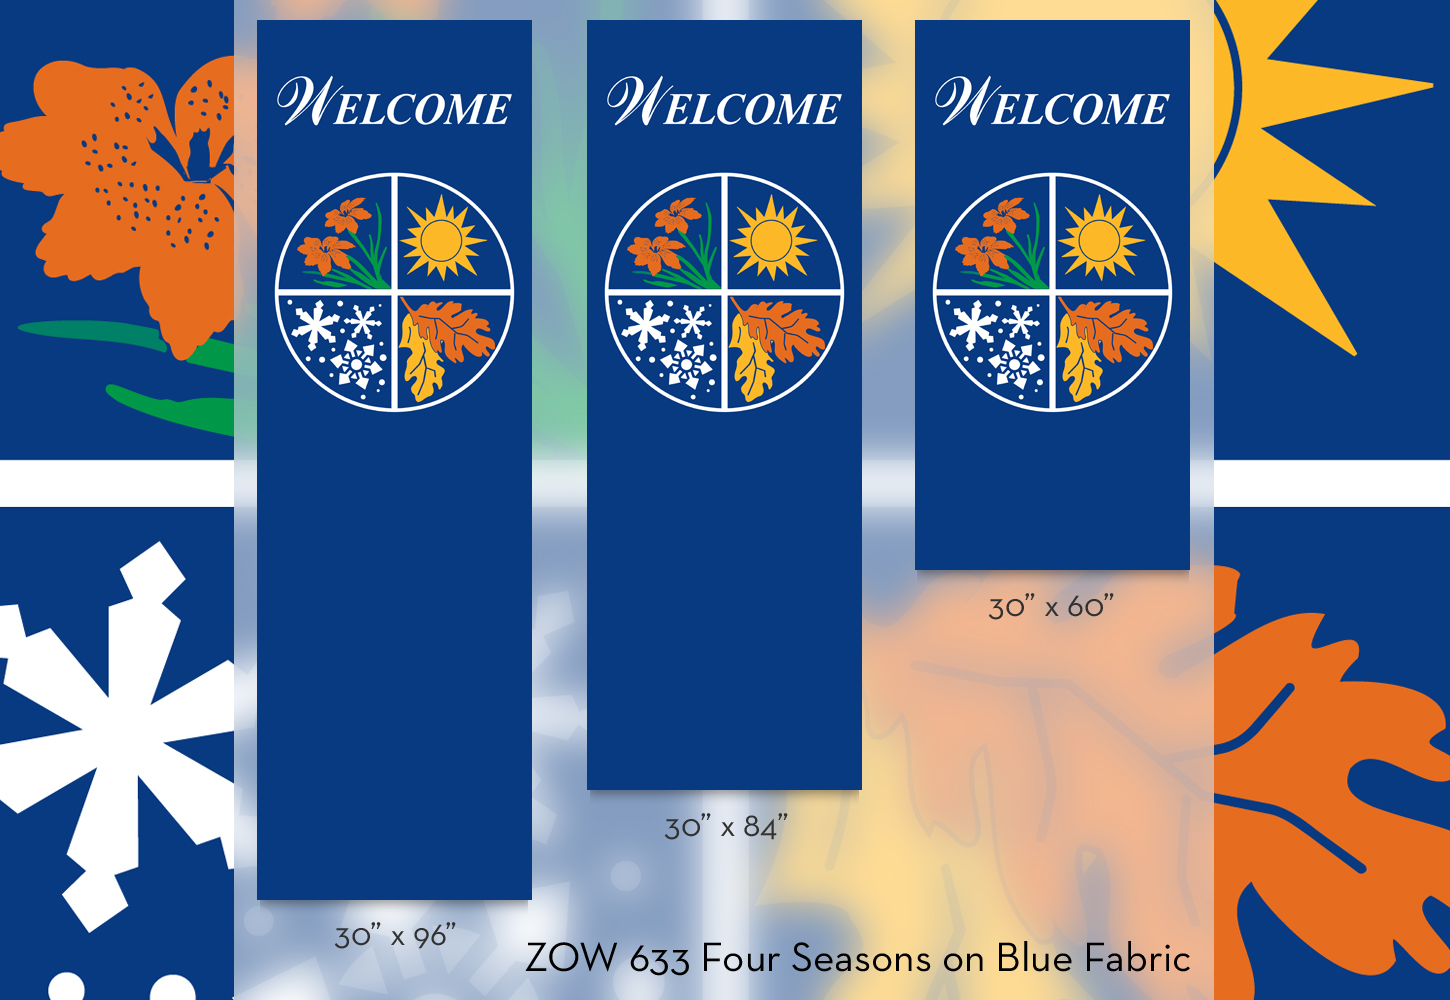 ZOW 633 Four Seasons on Blue Fabric